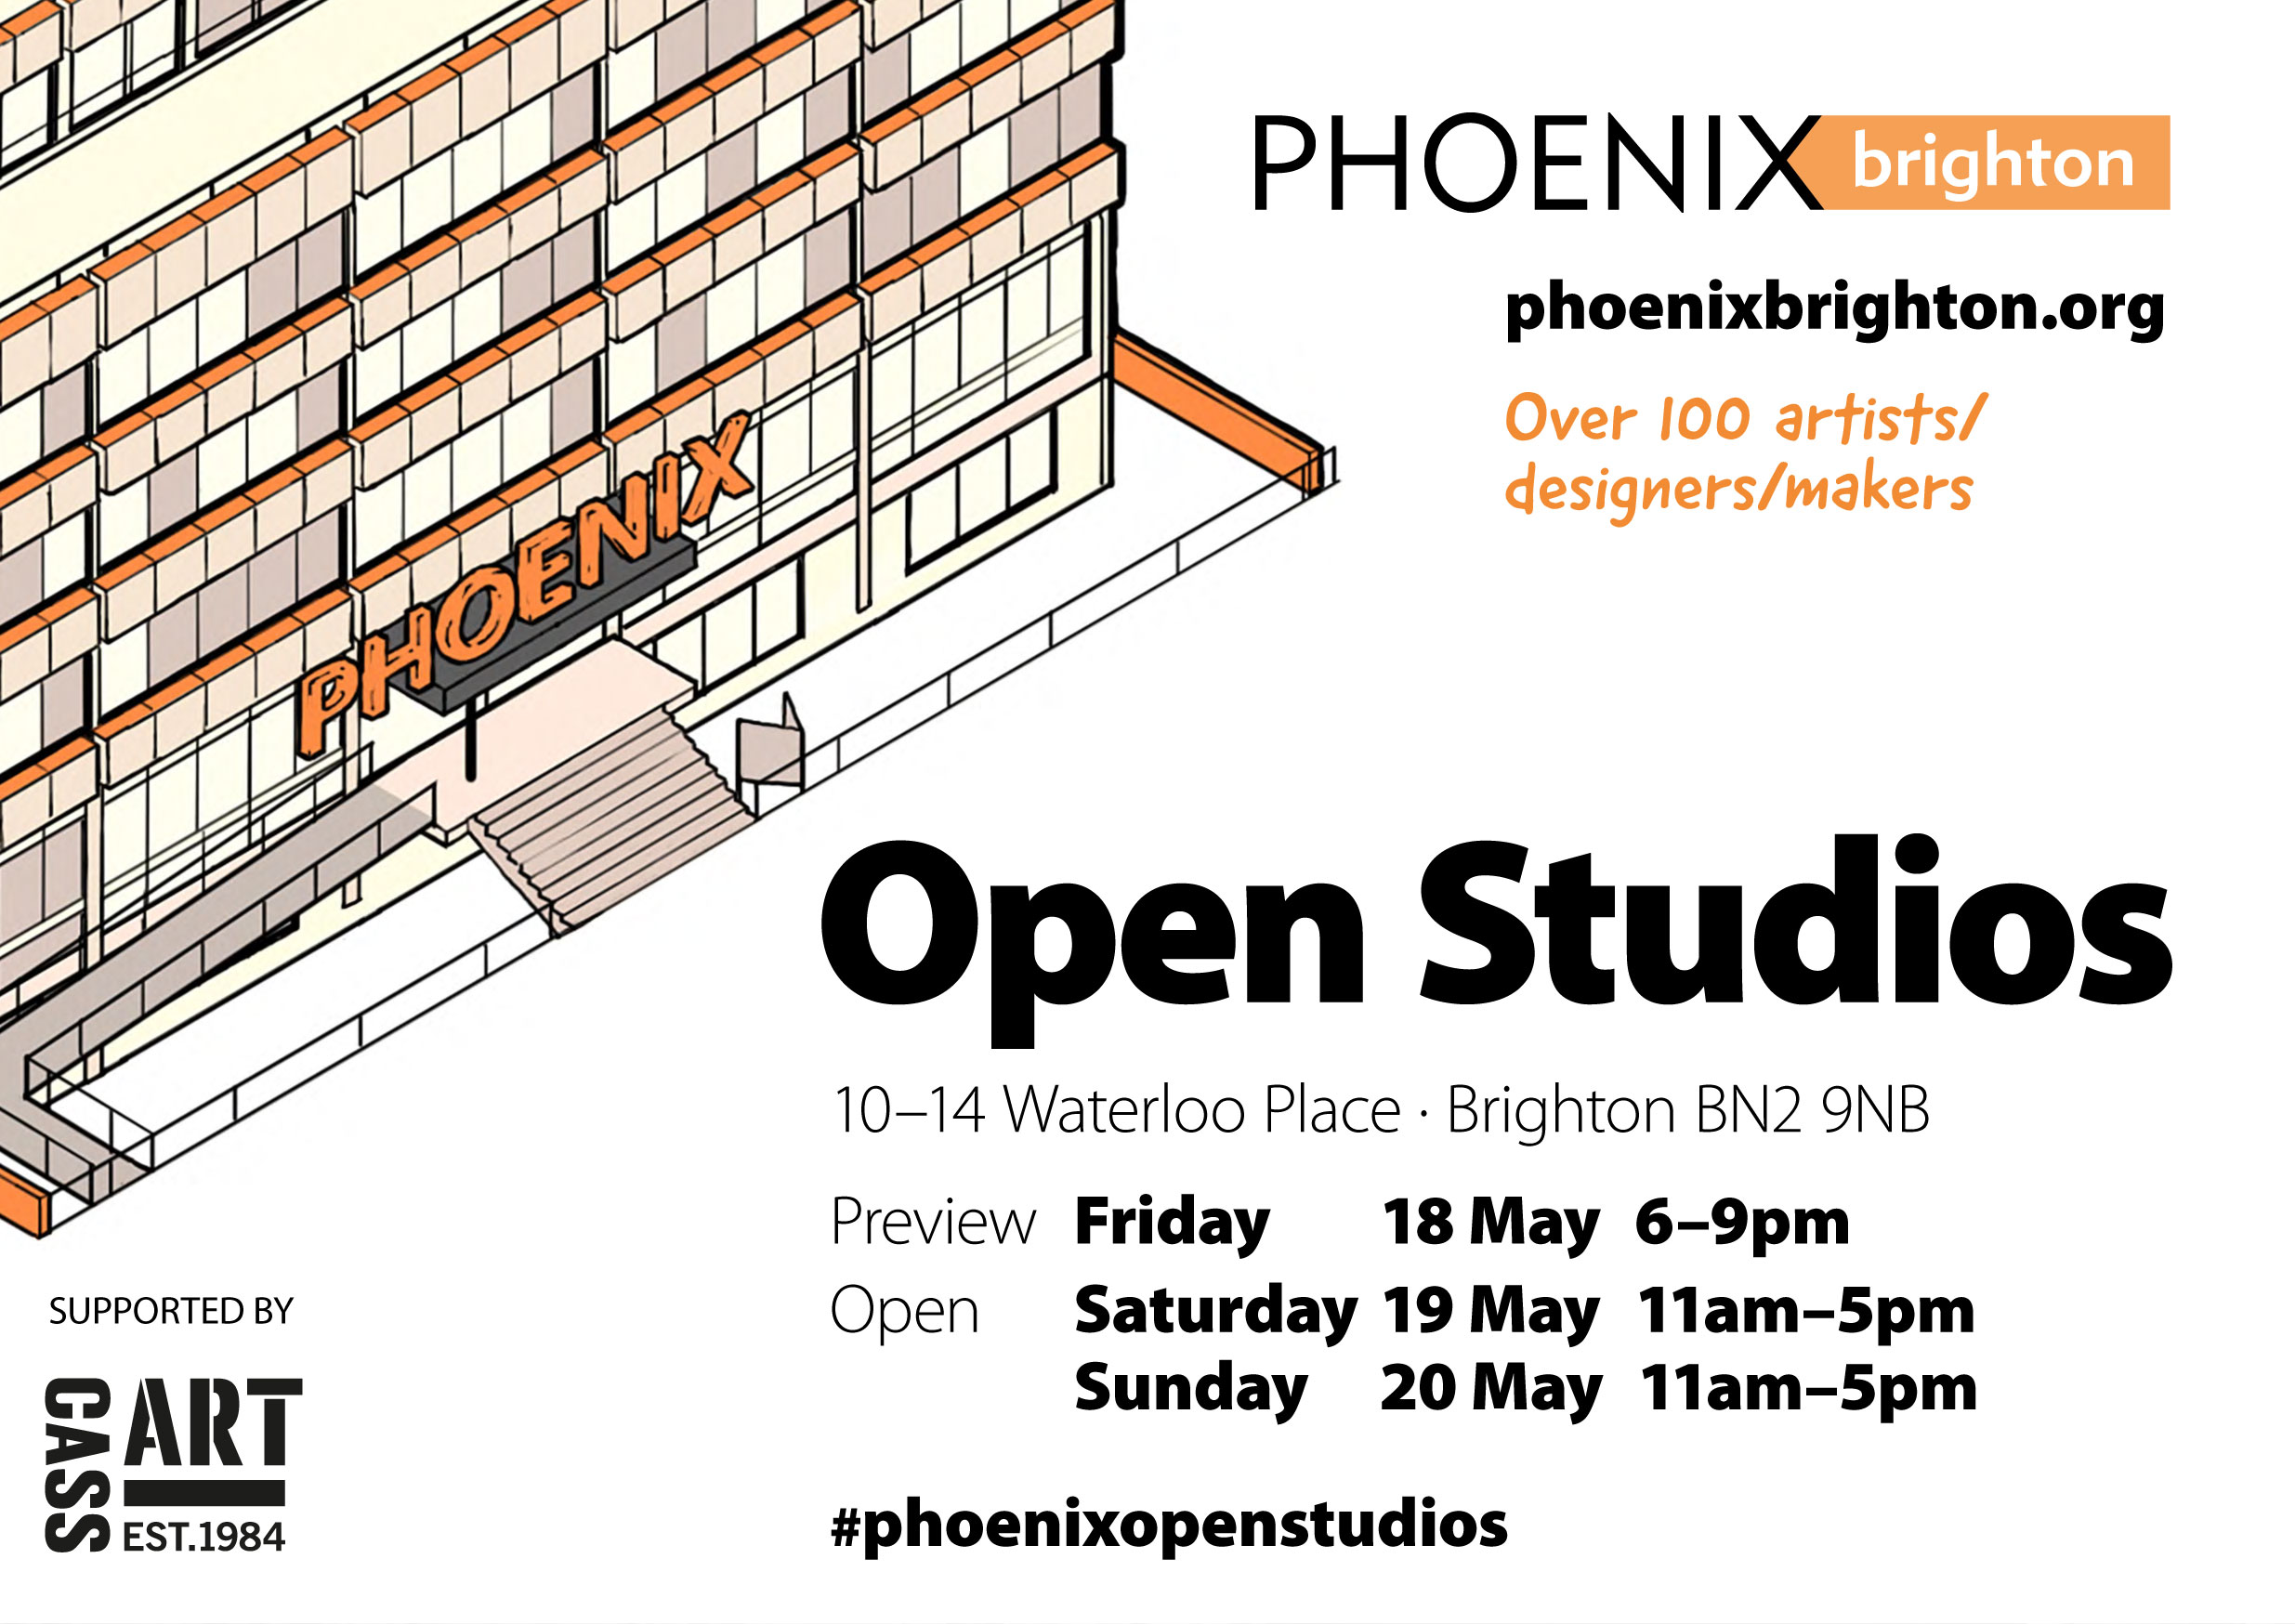 Open Studios at Phoenix Brighton May 2018    Phoenix Open Studios  preview is Friday 18th May 6-9pm at  Phoenix Brighton  10-14 Waterloo Place Brighton BN2 9NB. The current exhibition in the main gallery features  Brett Goodroad . There is also a  display of diverse works by artists working at Phoenix  and last but not least the studios are open for you to take a peak inside - that's over 100 studios.  I'll be opening my studio too so do pop in and see some of my latest work.  If you are unable to make the preview,  Phoenix Open Studios  is open from Saturday 19th May – Sunday 20th May. From 11am - 5pm. I hope that you can make it along